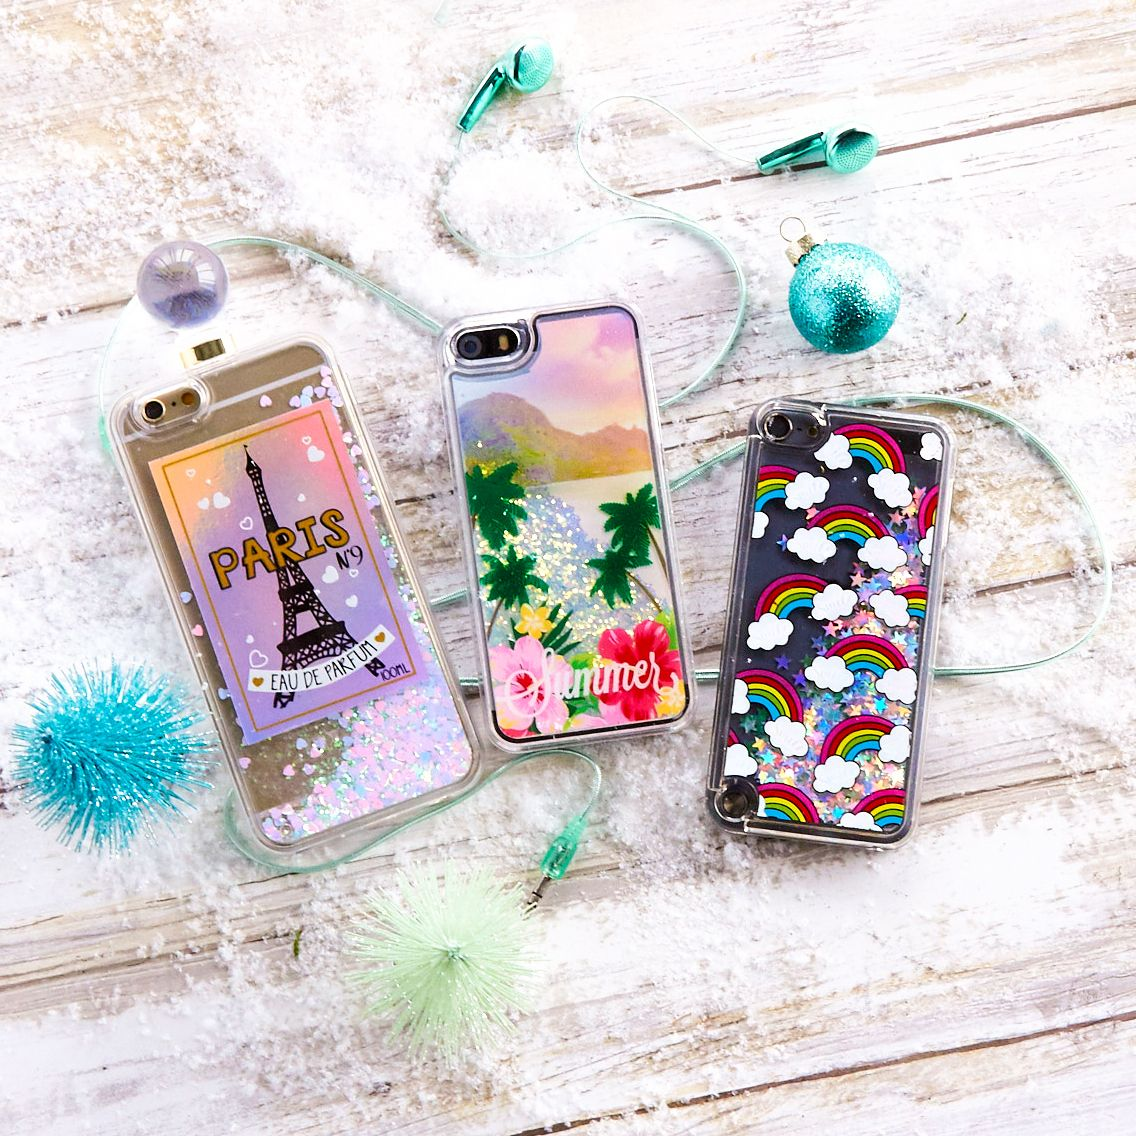 Currently obsessed with these liquid filled phone cases!